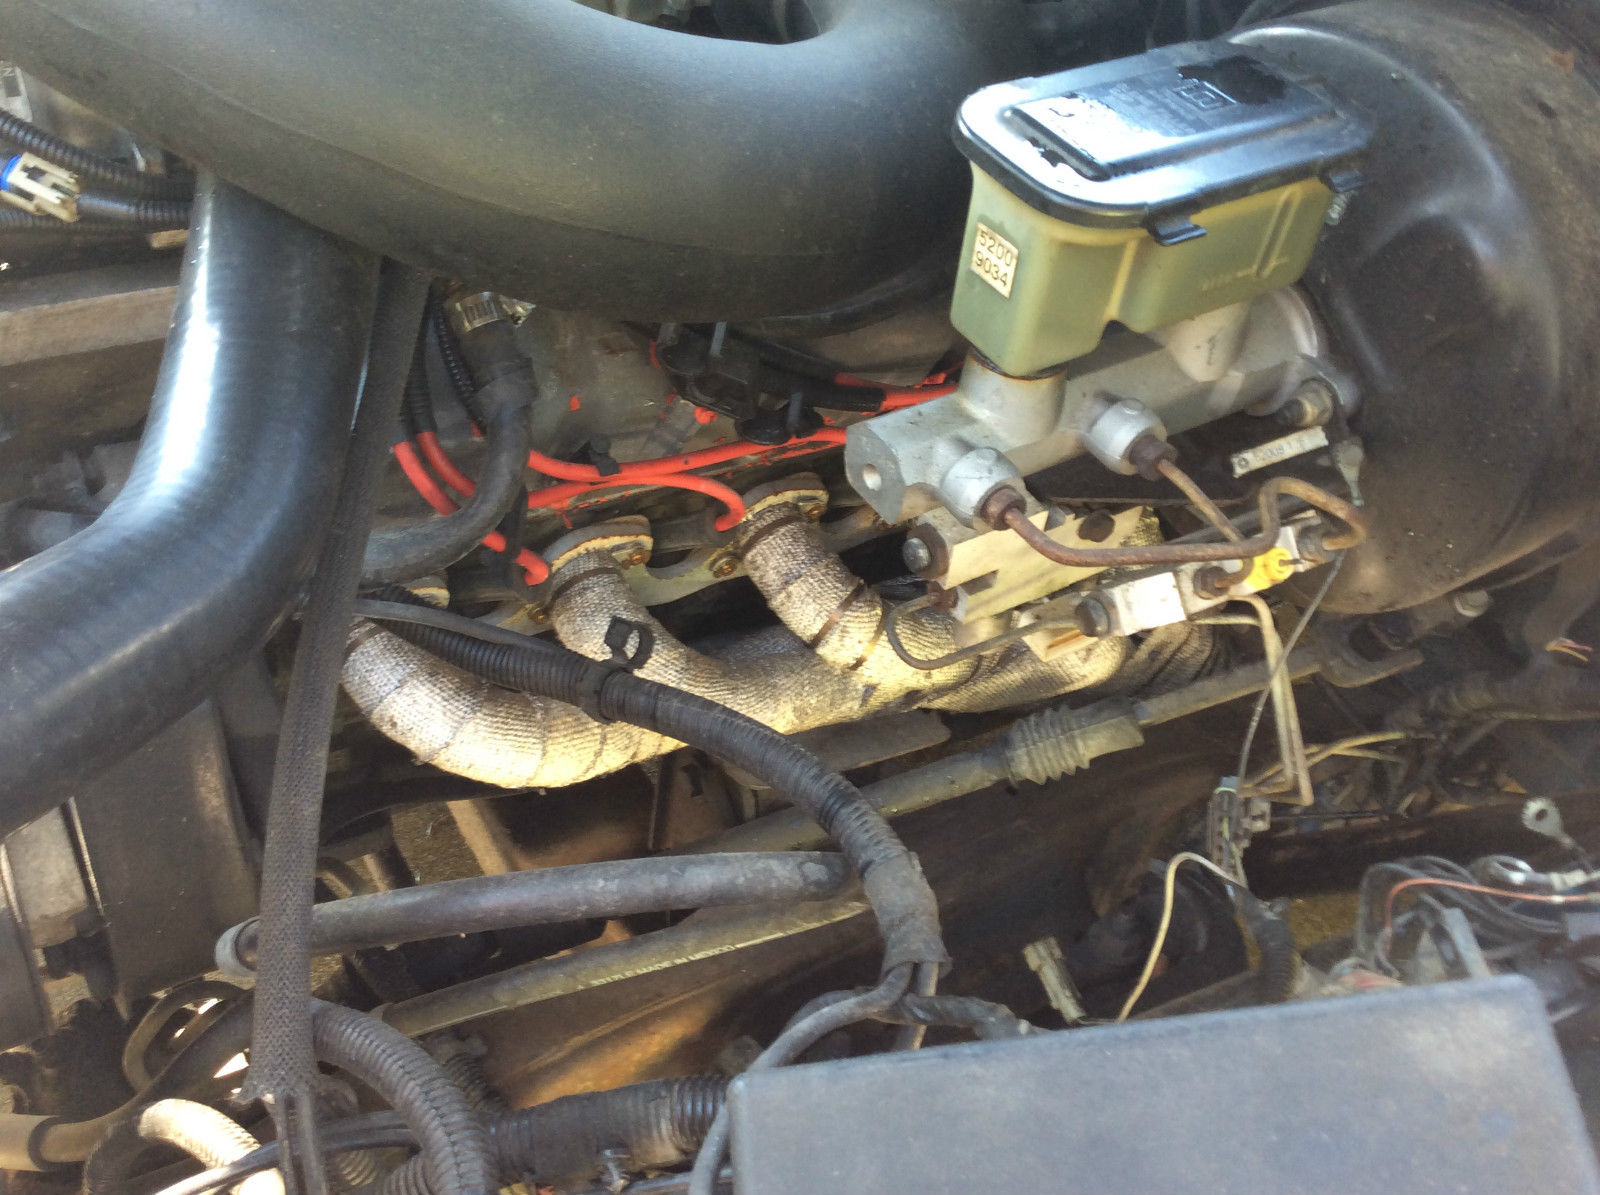 For Sale Dodge Ram 1500 With A Magnum V10 Engine Swap Depot Wiring Harness